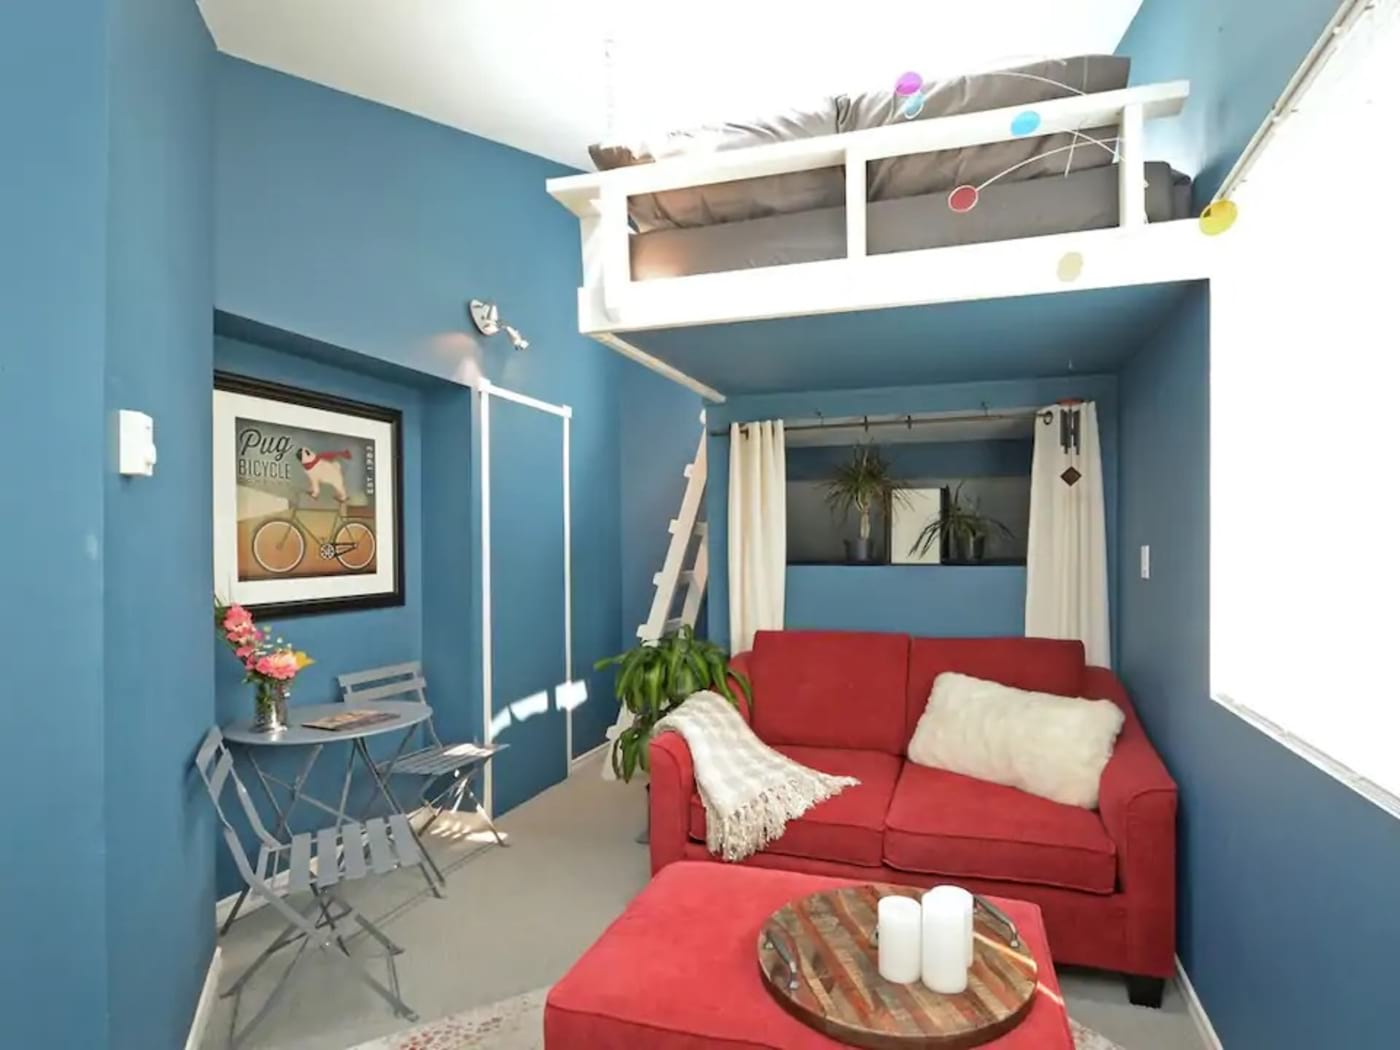 Perfect Airbnb for Digital Nomads – Private room skylight loft